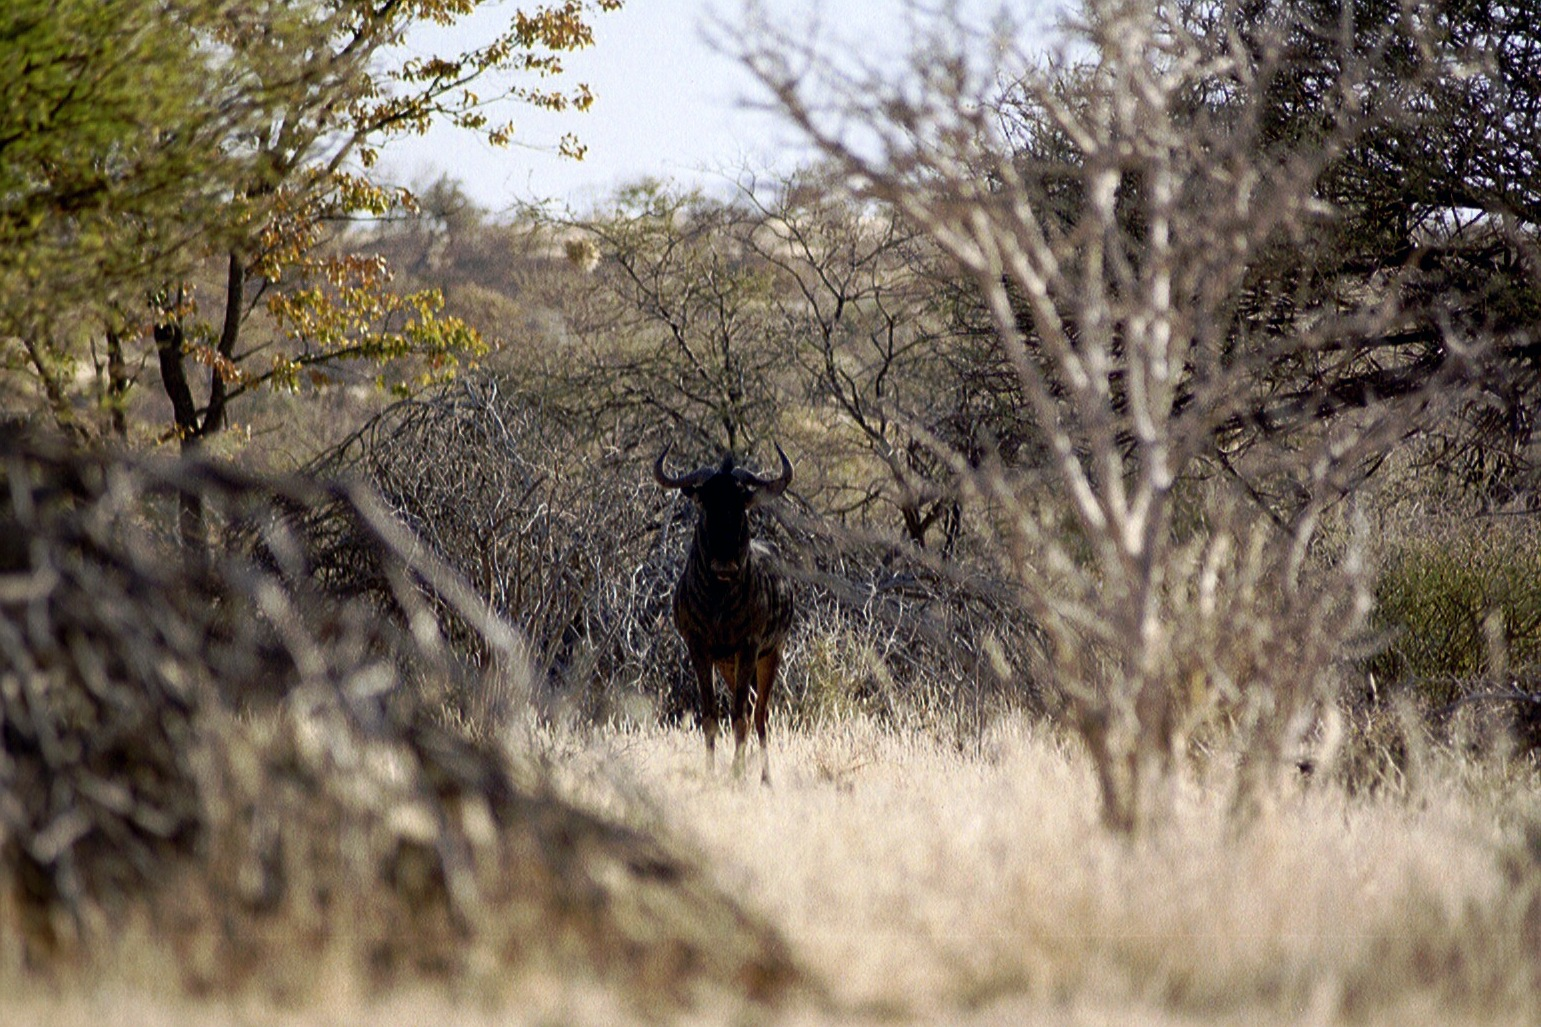 Namibia 1999 Auslands-Job / Tierfang für Nationalpark SA